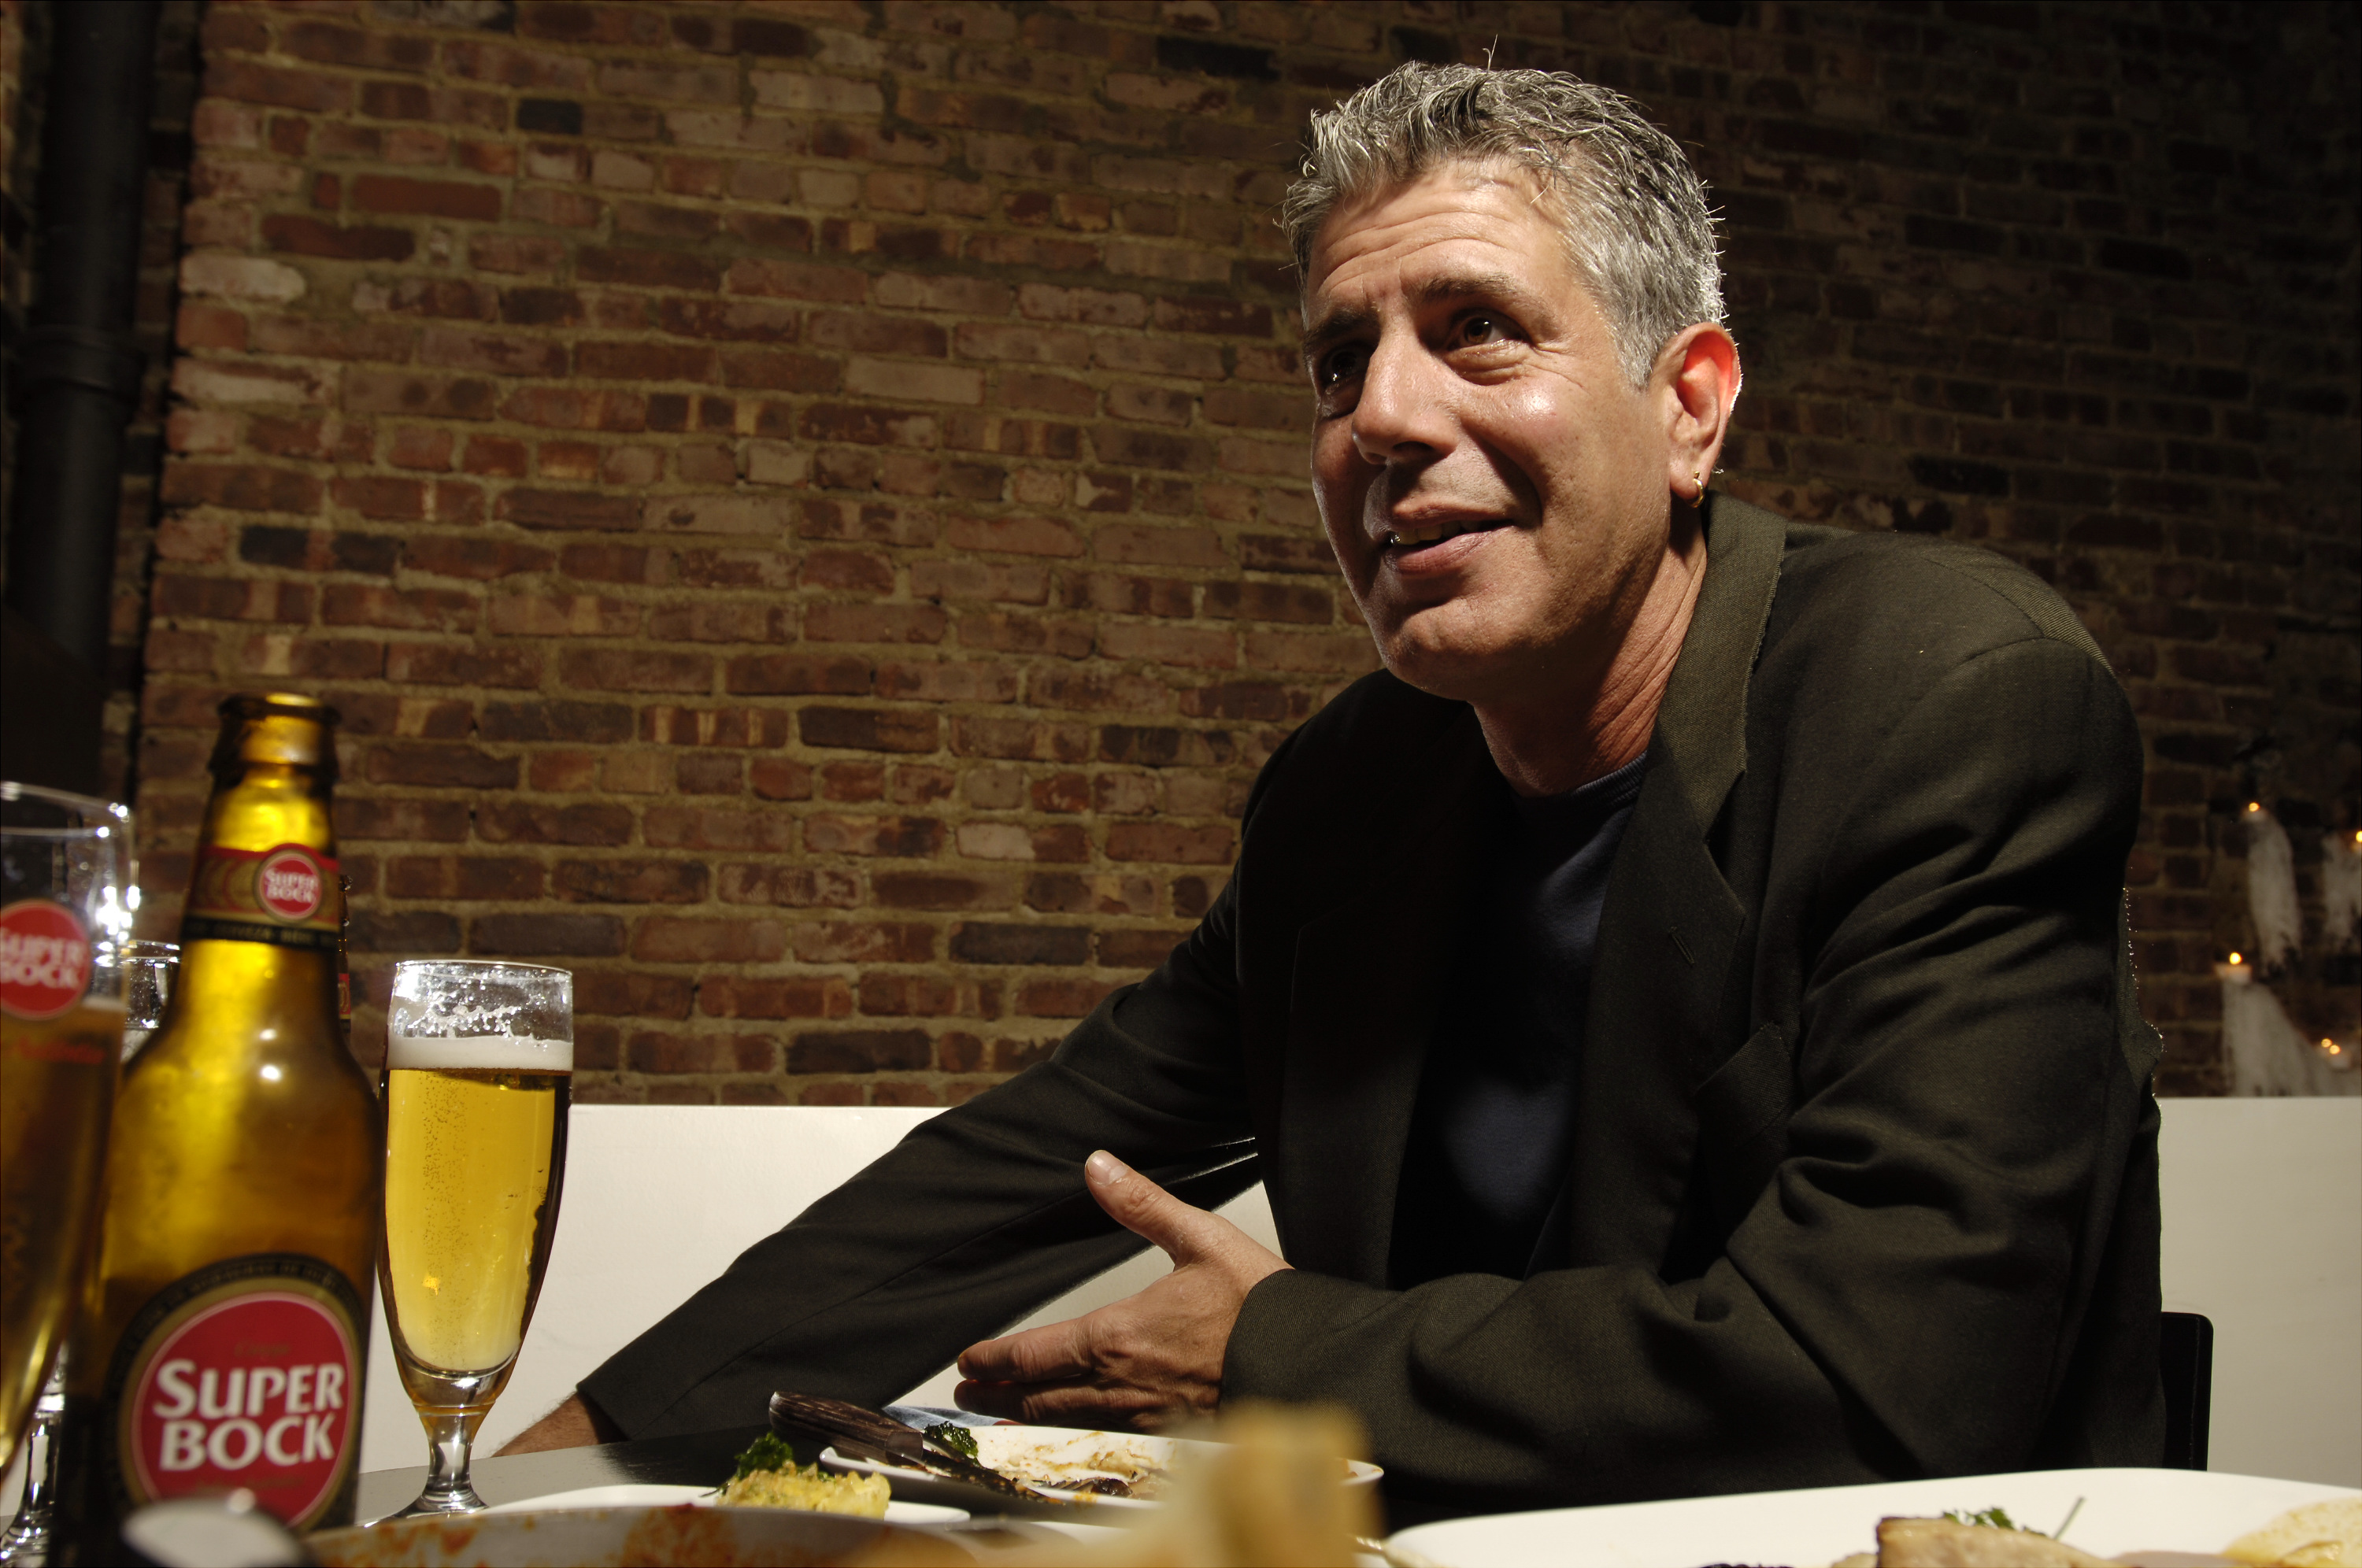 """UNITED STATES - APRIL 12: Chef Anthony Bourdain has a drink at Tintol restaurant in Times Square. Bourdain, 49, is the star of """"Anthony Bourdain: No Reservations,"""" the Travel Channel series that's half travelogue and half food show. Traveling constantly f"""